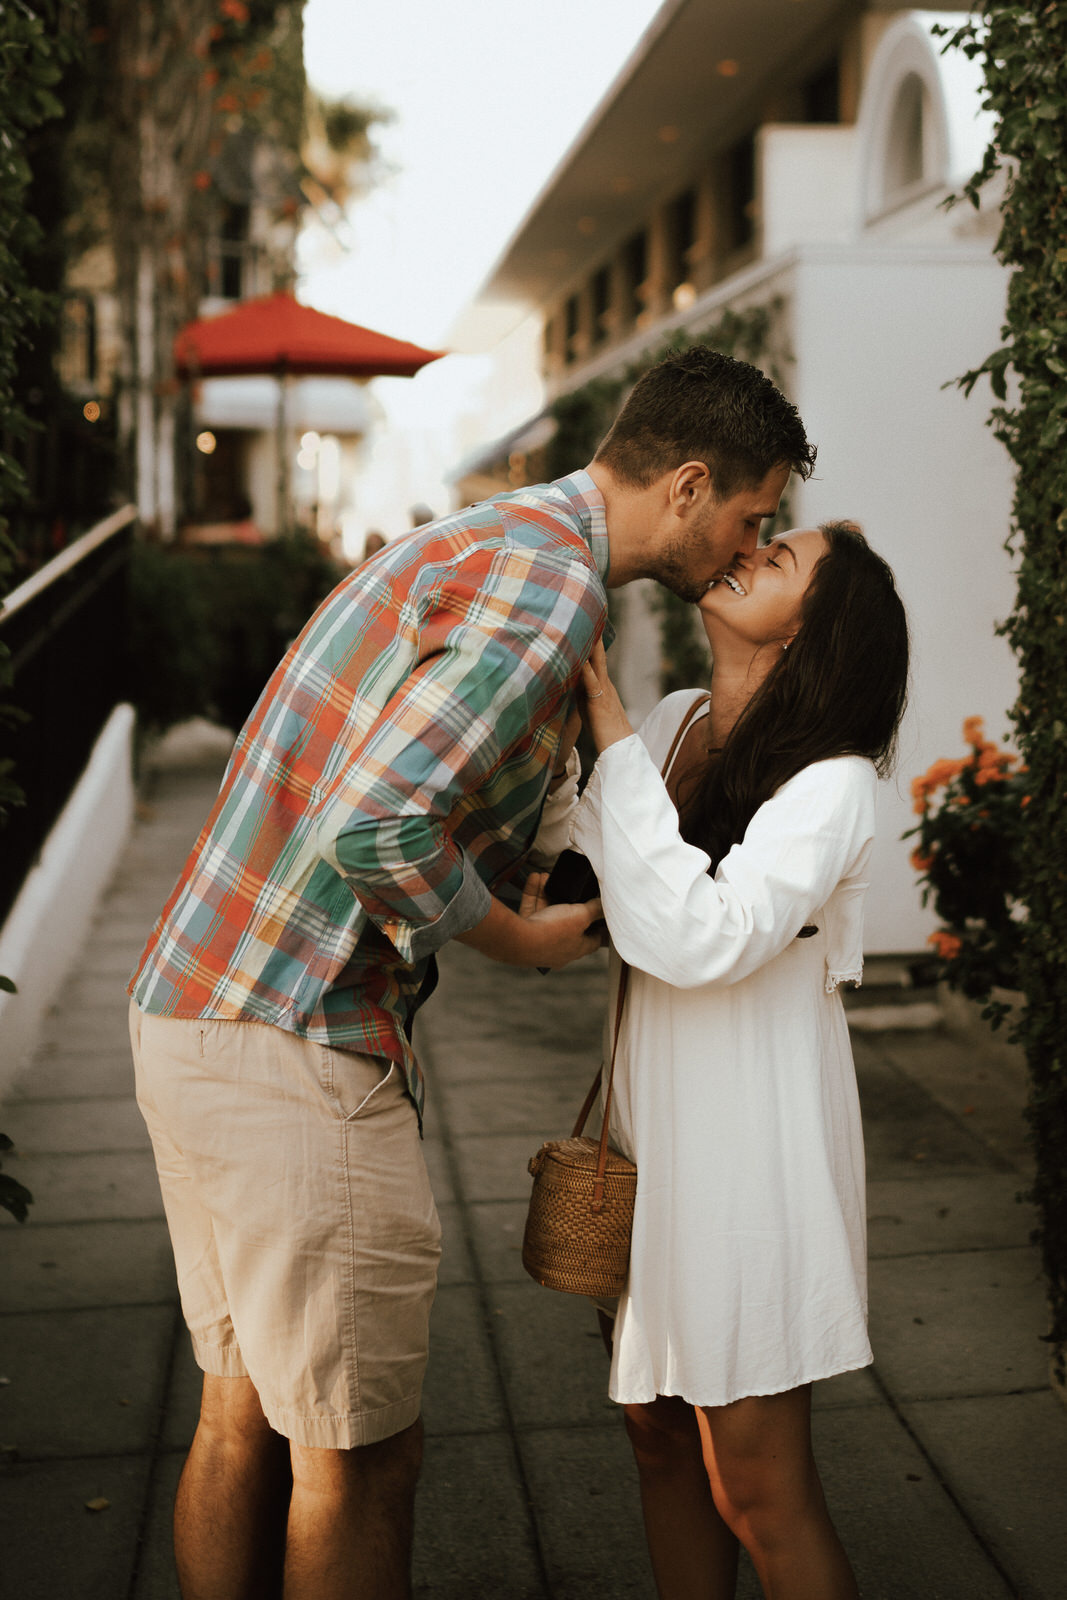 Naples 5th Ave Proposal Photos- Michelle Gonzalez Photography- Matt and Jenna-15.JPG